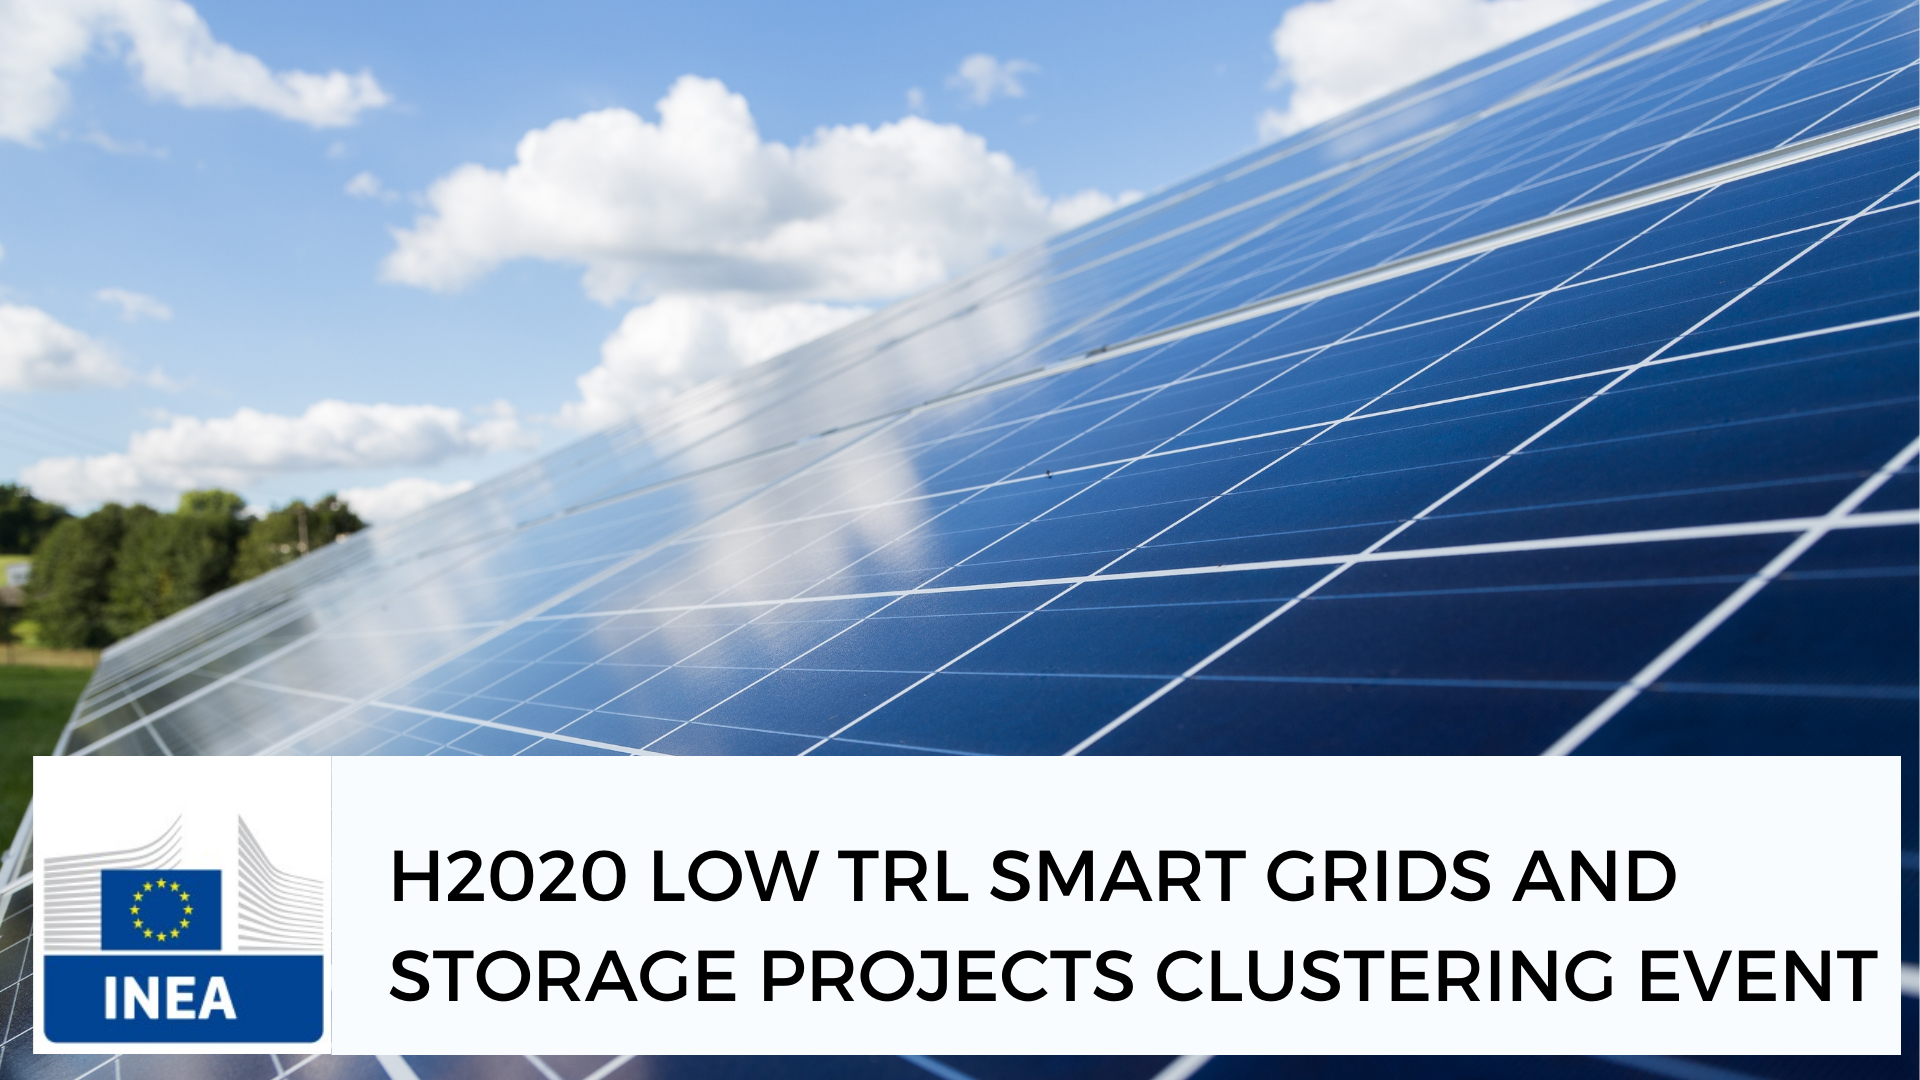 INTERPLAN at INEA Low TRL Smart Grids and Storage Projects clustering virtual event